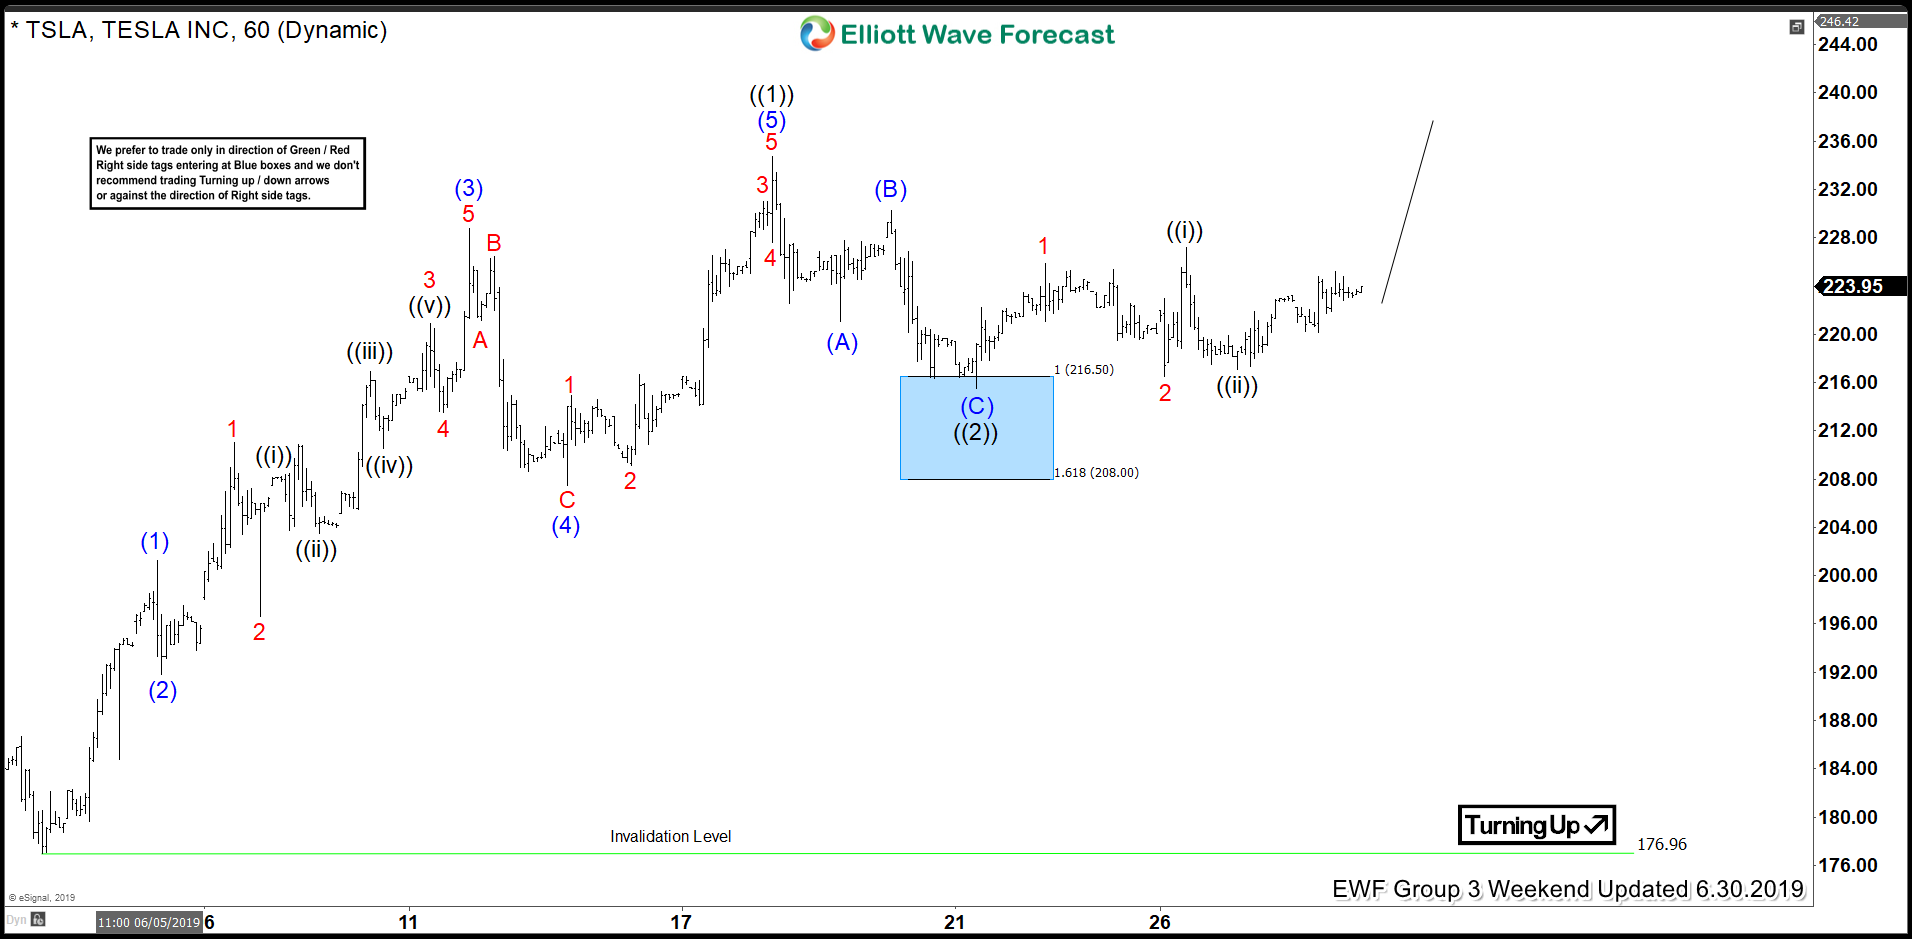 Tesla Elliott Wave Analysis Calling The Rally From Blue Box